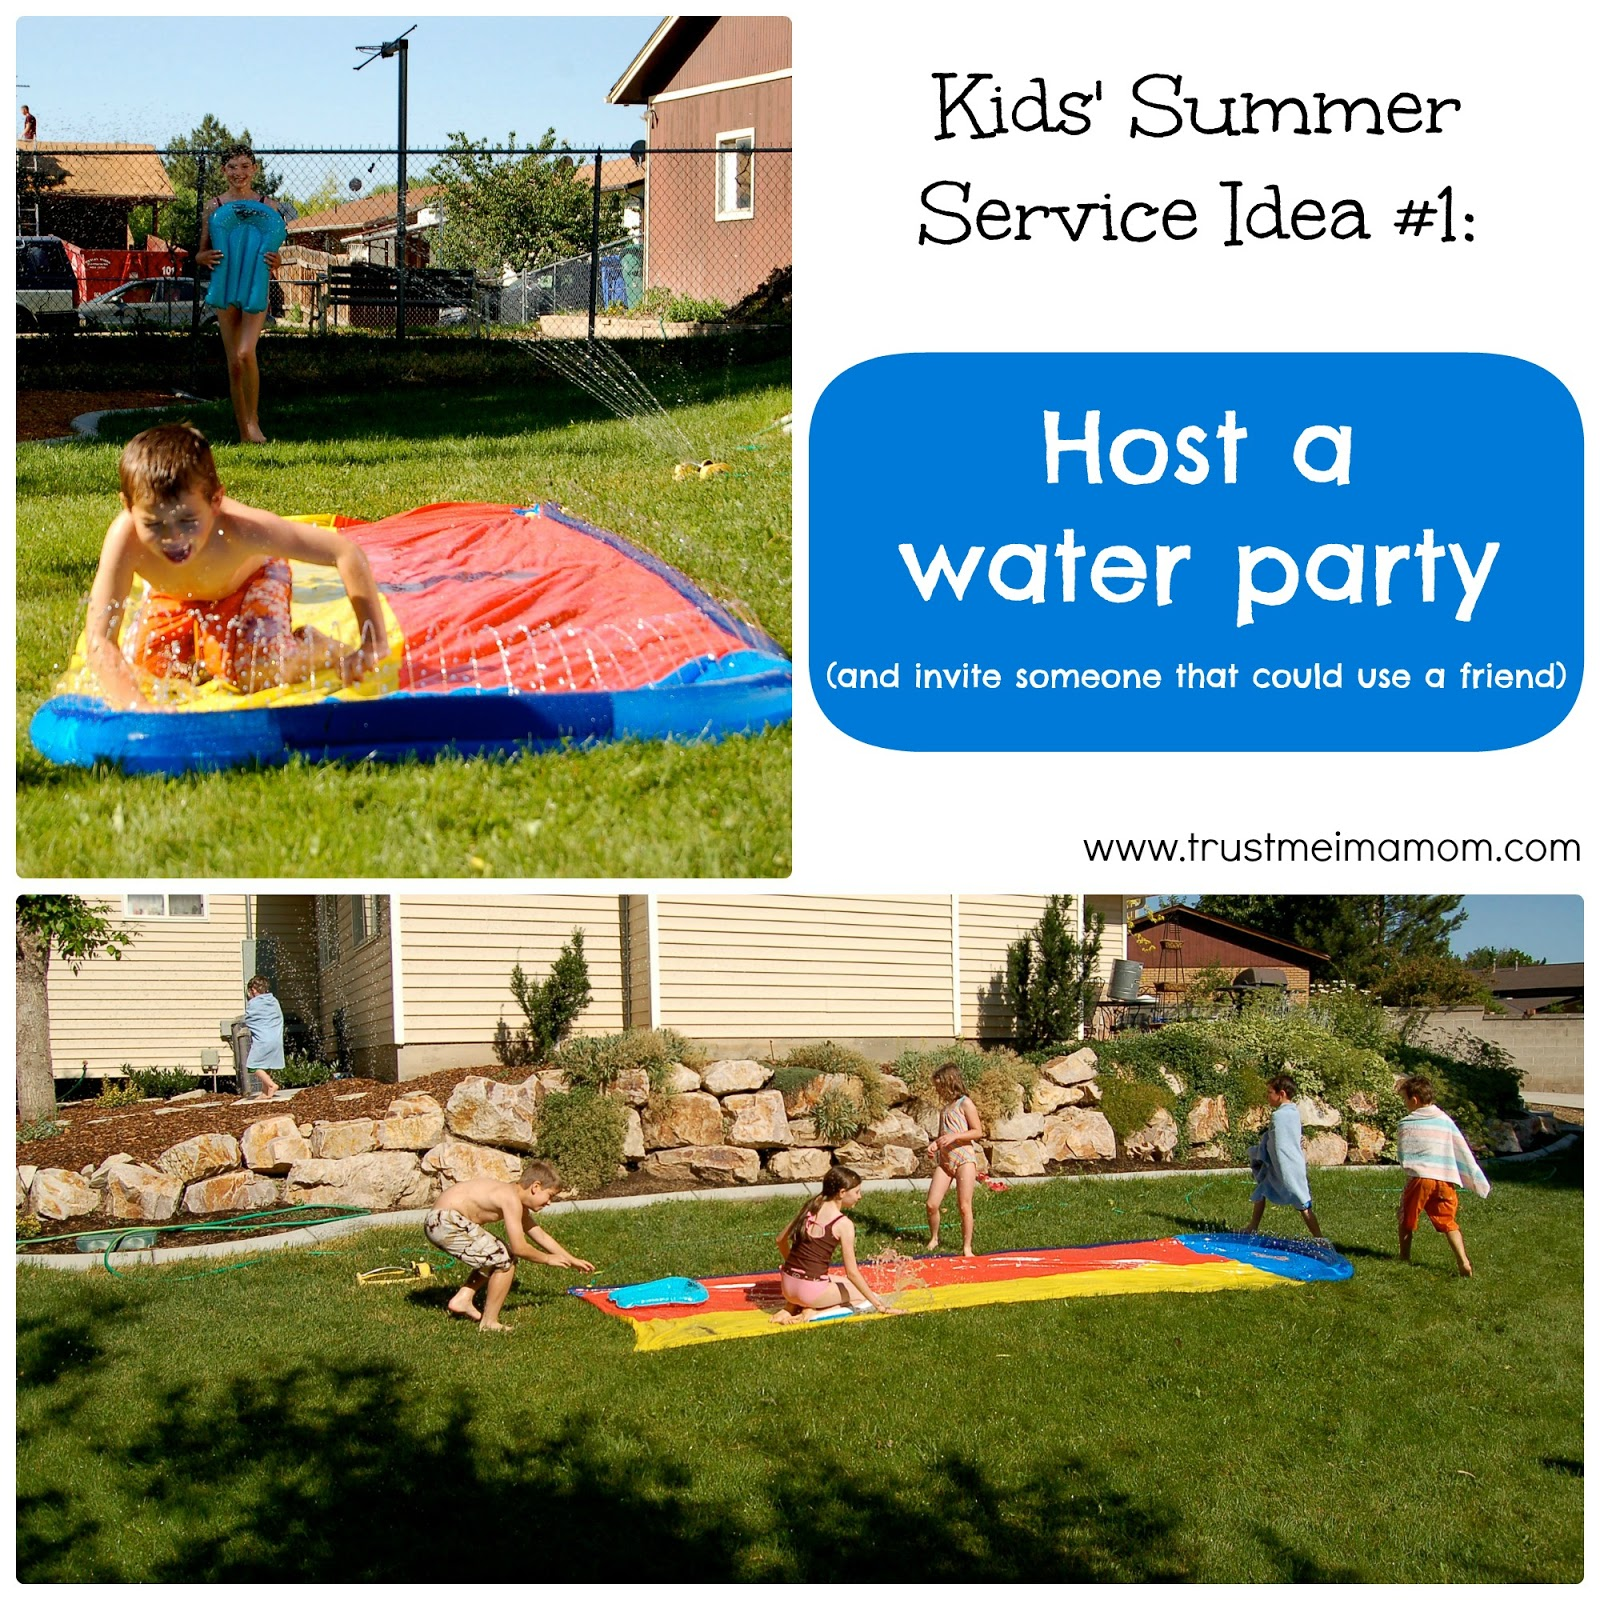 Fun Ways to Serve with Kids This Summer... Idea #1 - Host a water party & invite someone who could use a friend!